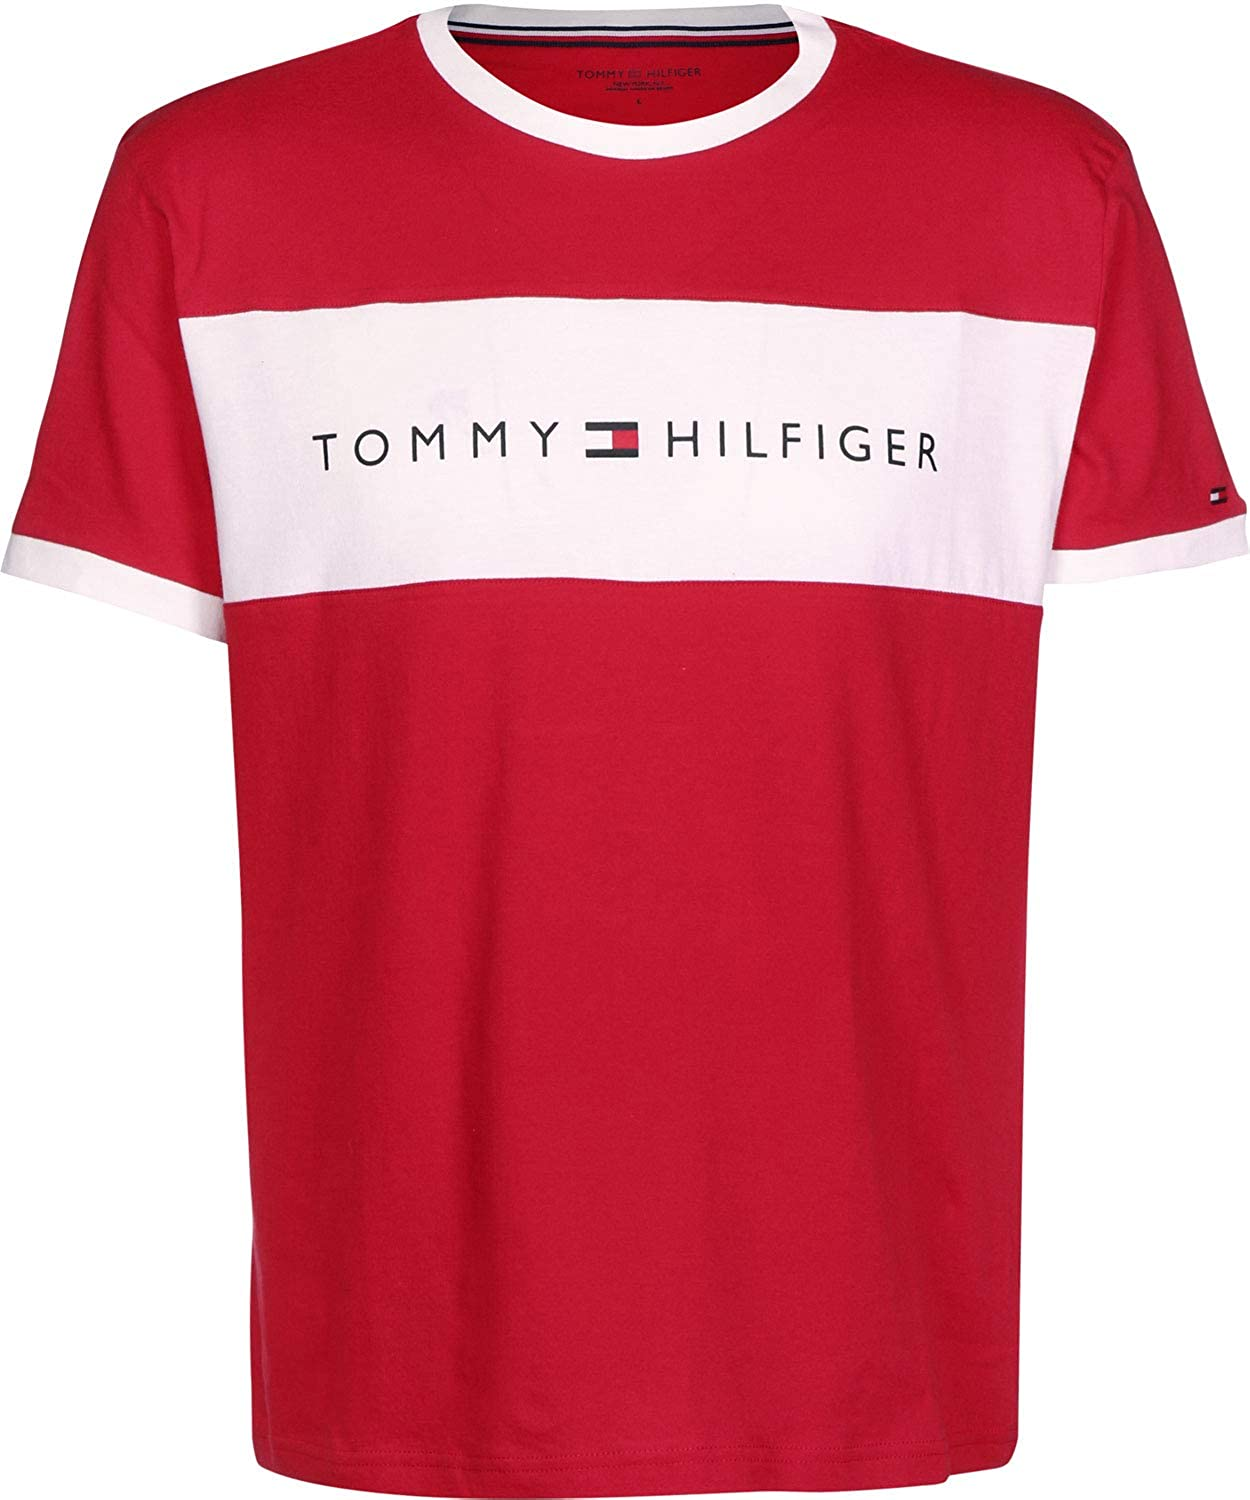 868e0603d85e Tommy Hilfiger Men s Flag Graphic T-Shirt